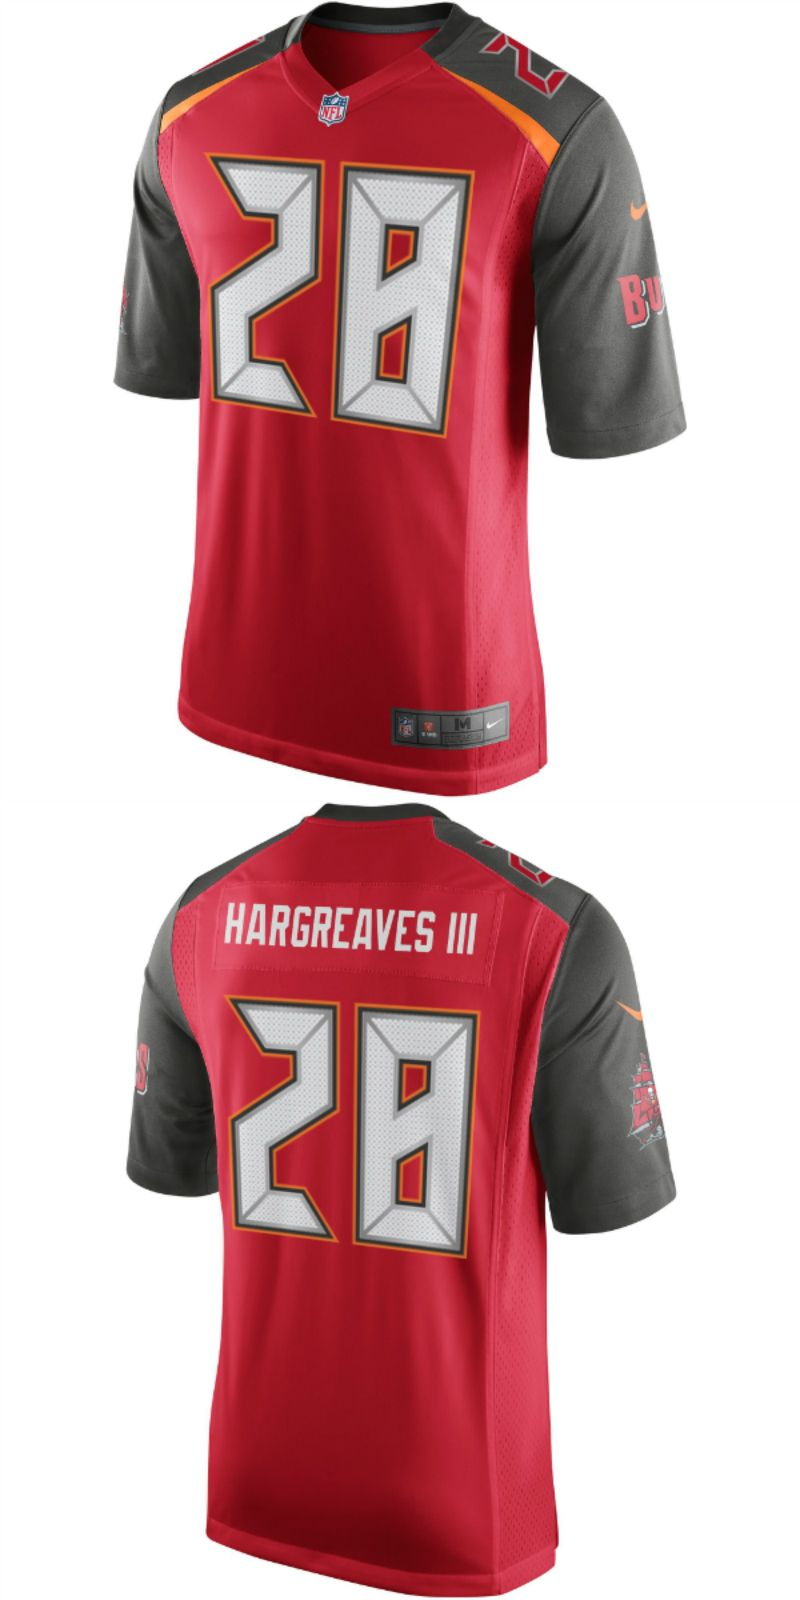 sale retailer f9c44 90325 UP TO 70% OFF. Vernon Hargreaves III Tampa Bay Buccaneers ...